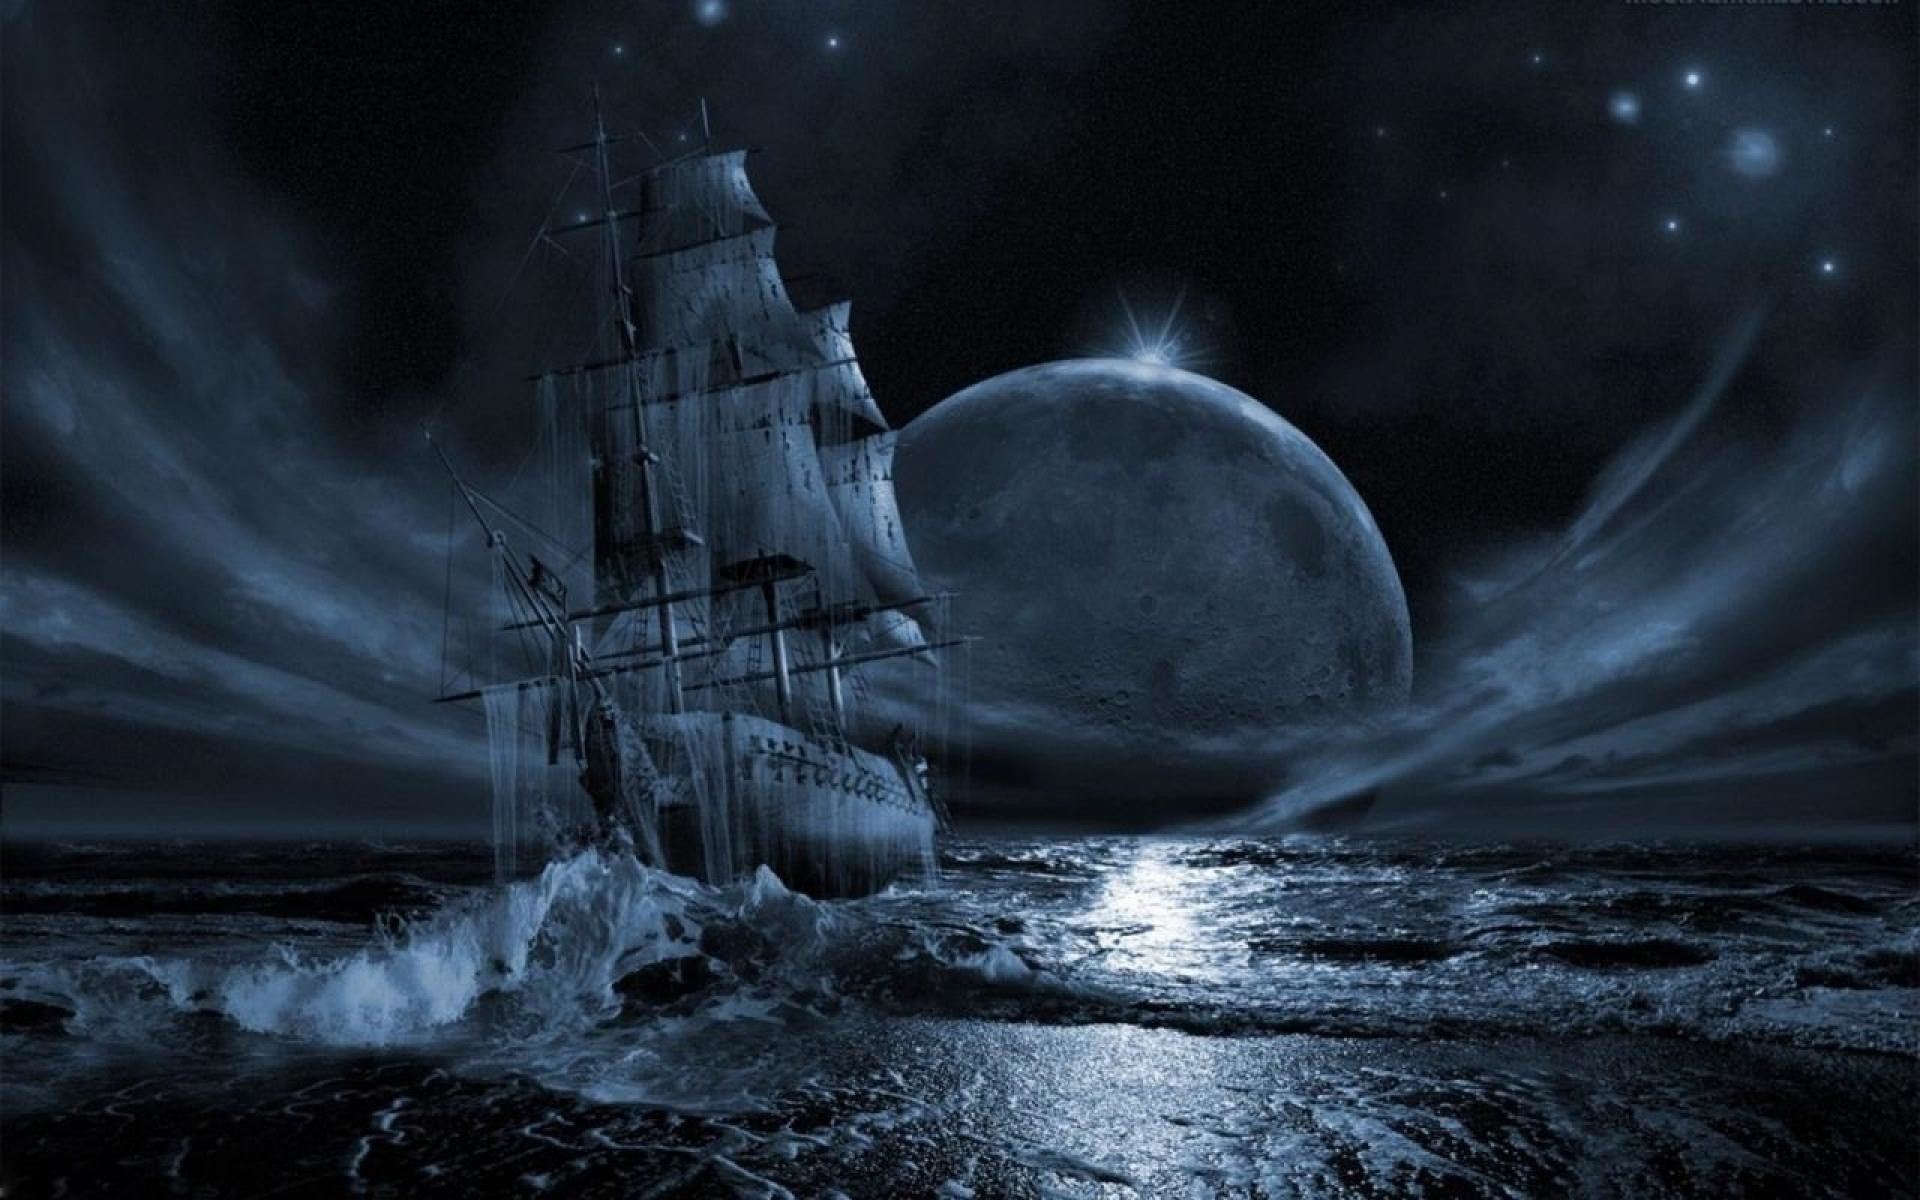 Ghost Pirate Ship Wallpapers High Quality Resolution As Wallpaper HD